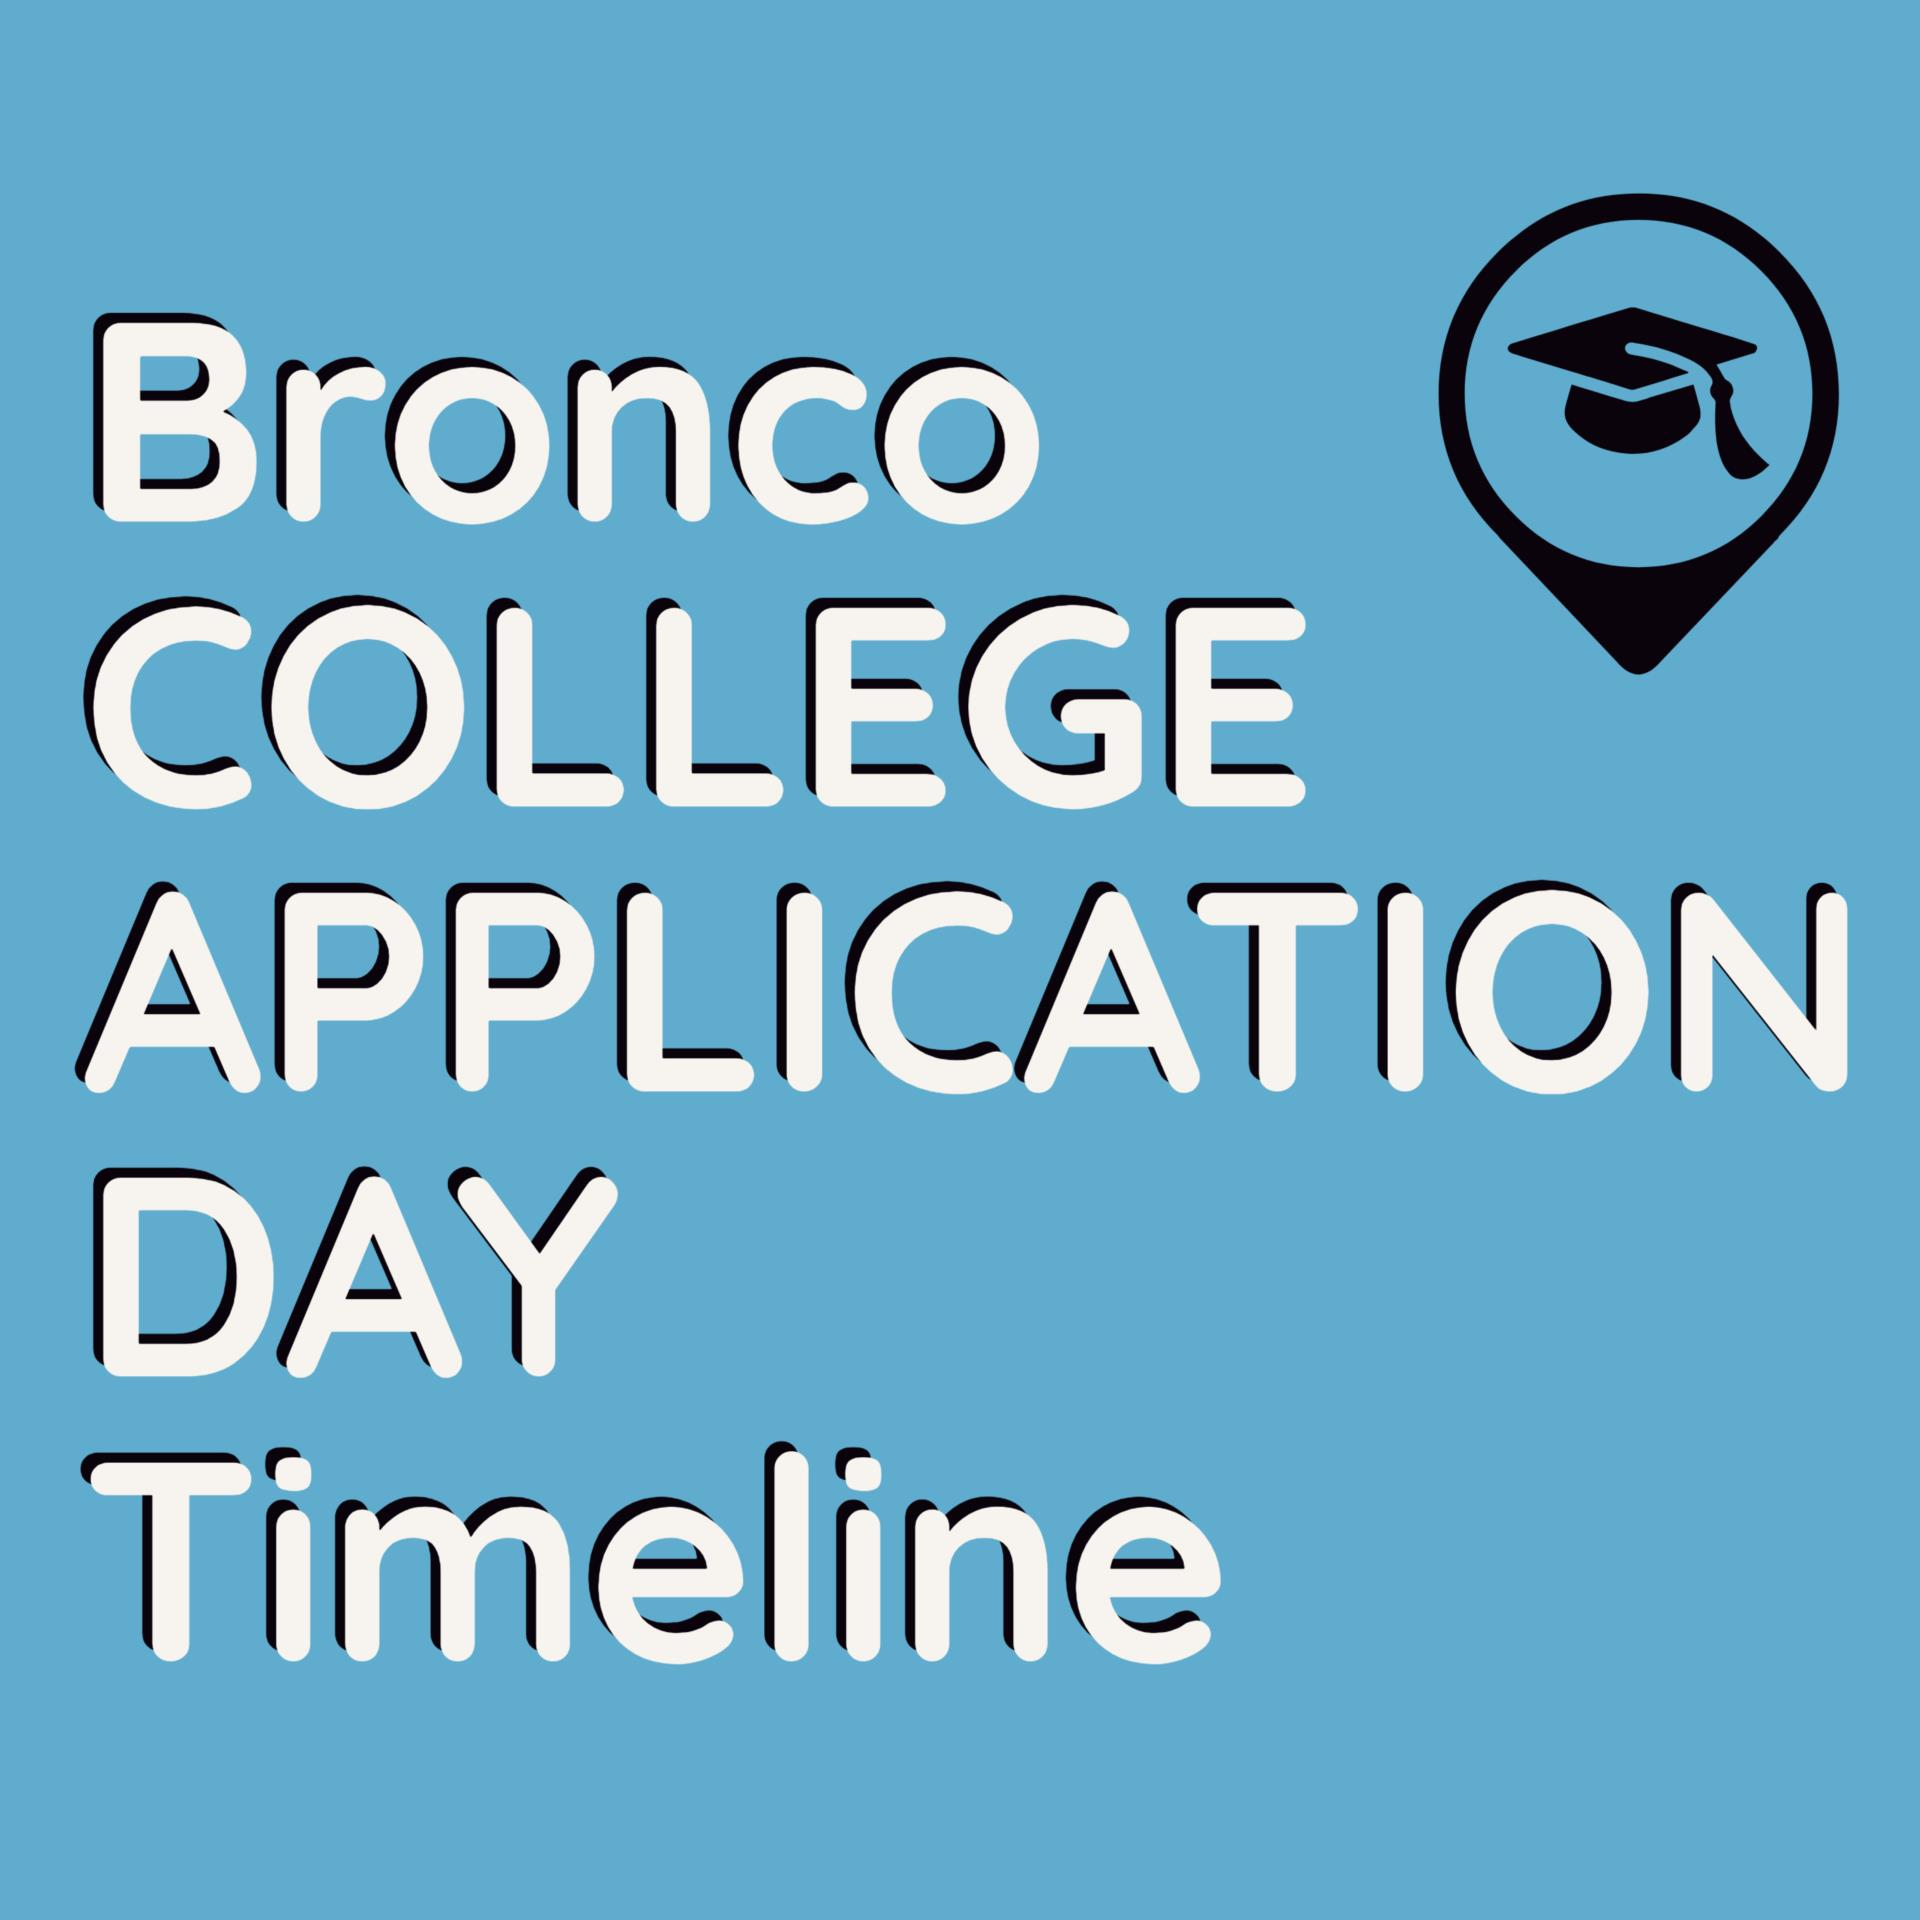 Bronco College Application Day Timeline